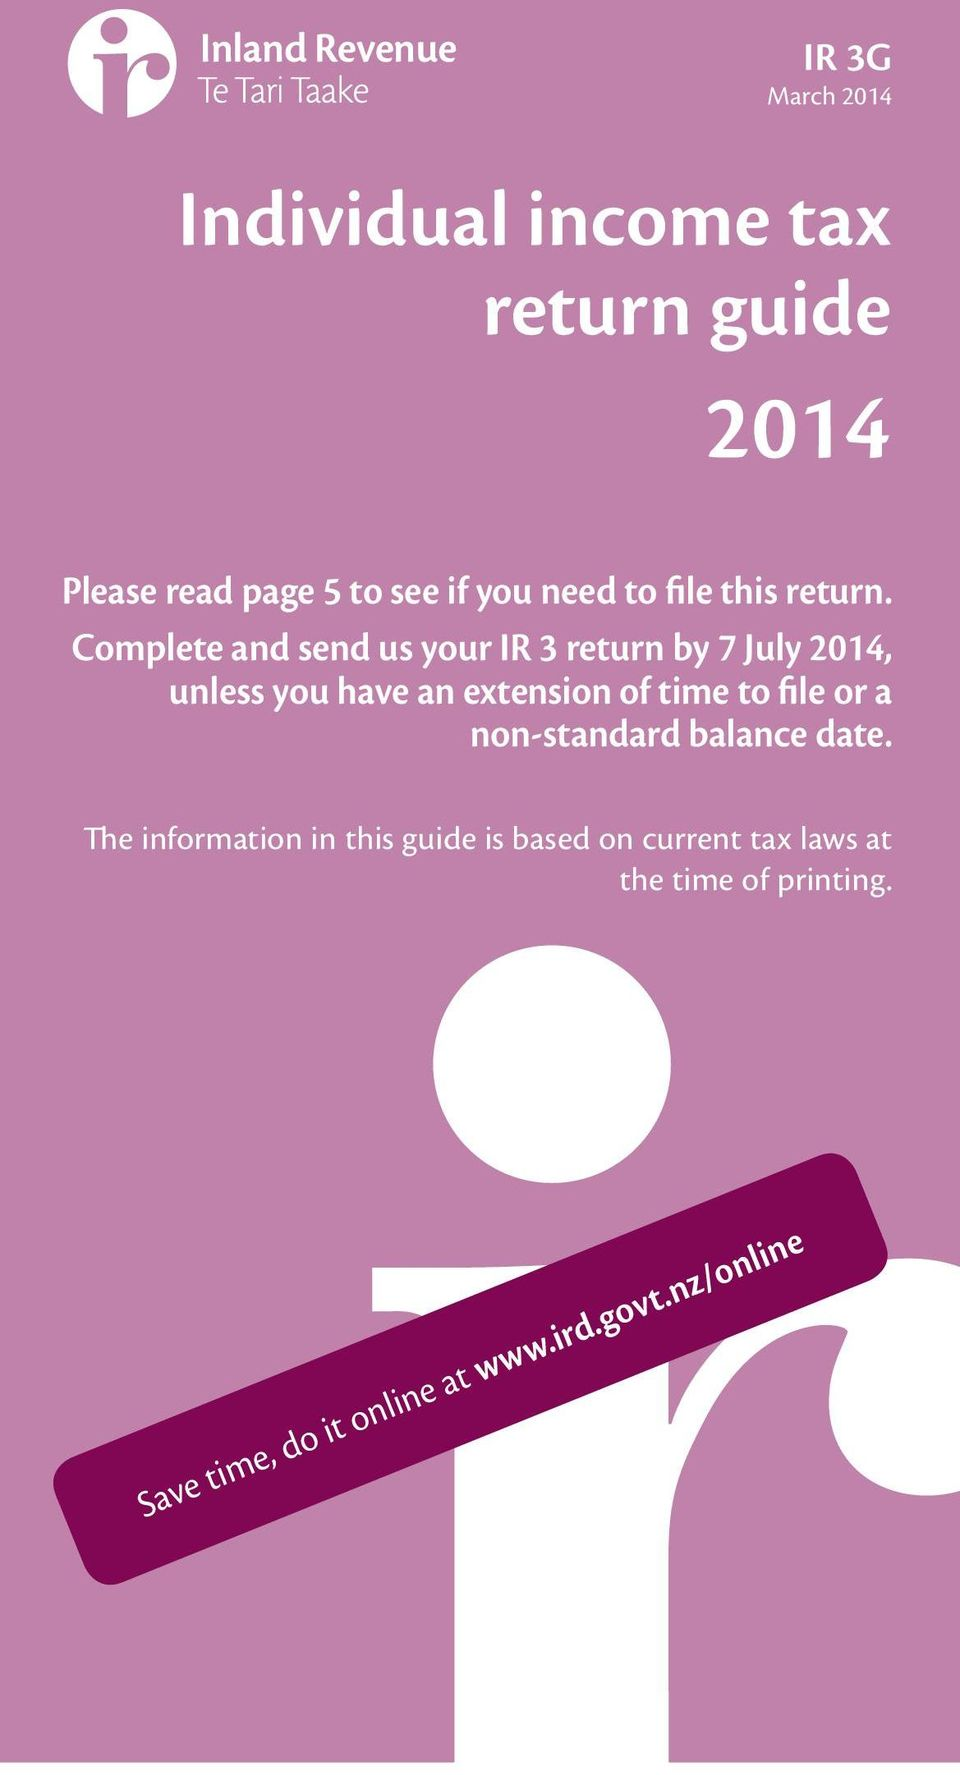 Complete and send us your IR 3 return by 7 July 2014, unless you have an extension of time to